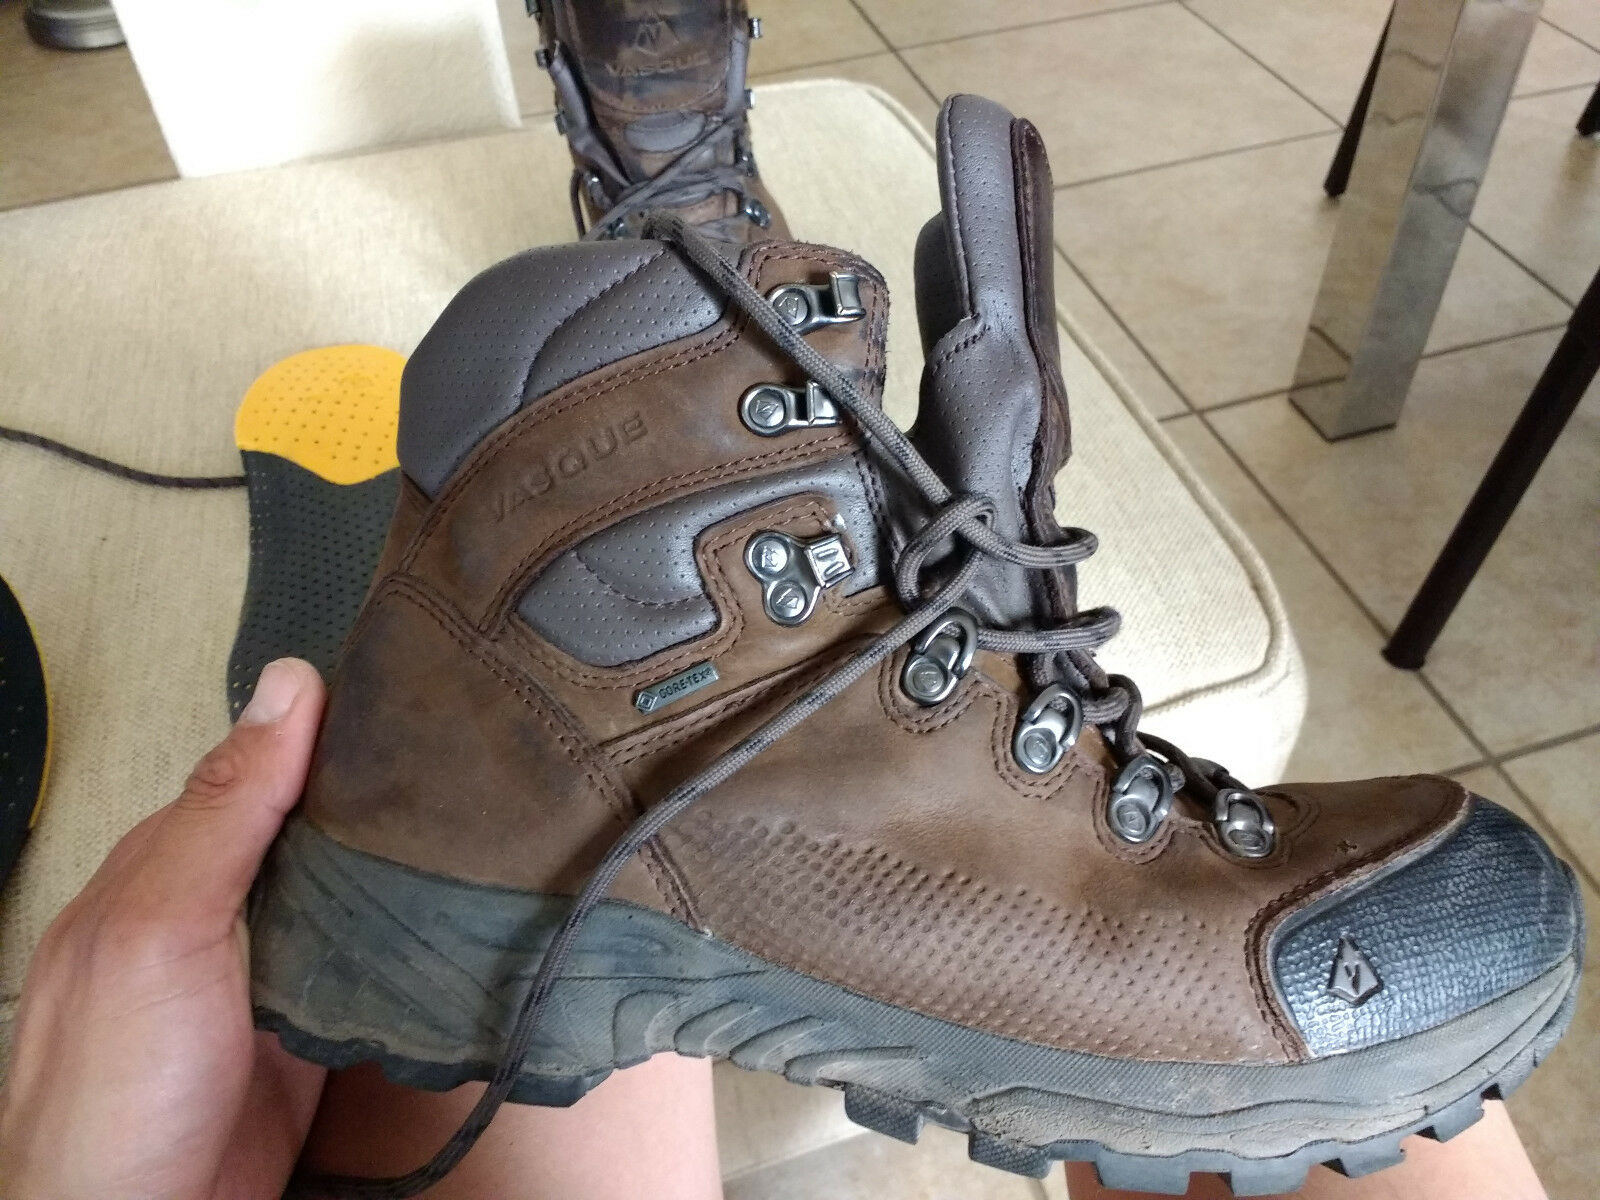 Vasque St. Elias GTX Hiking Boots - 9M - Excellent used condition